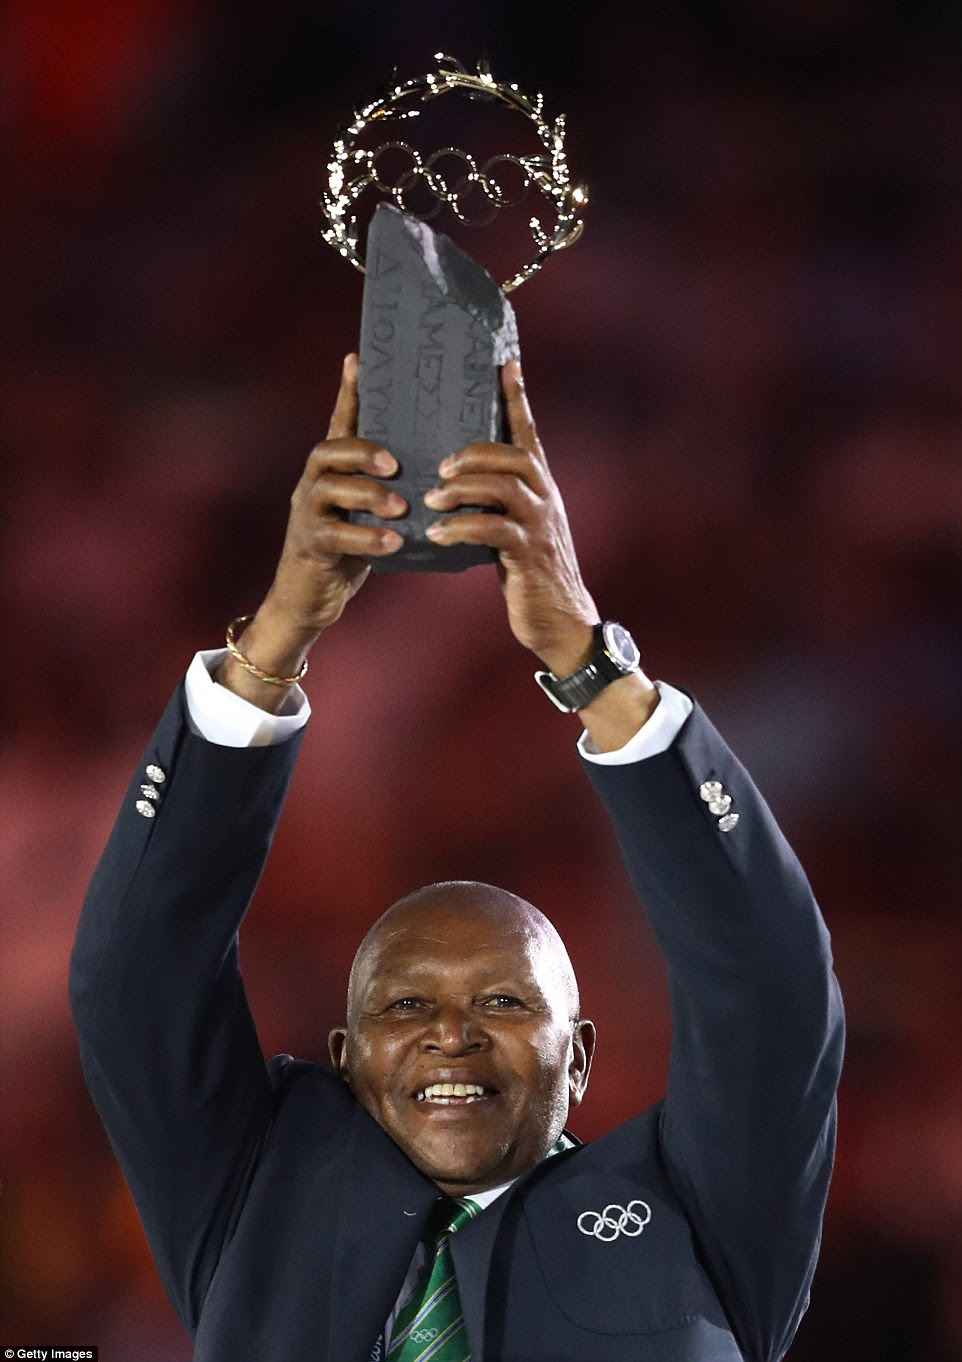 Kipchoge Keino, hairman do Comitê Olímpico do Quênia, levanta o Olympic Laurel Trophy no final da Cerimônia de Abertura